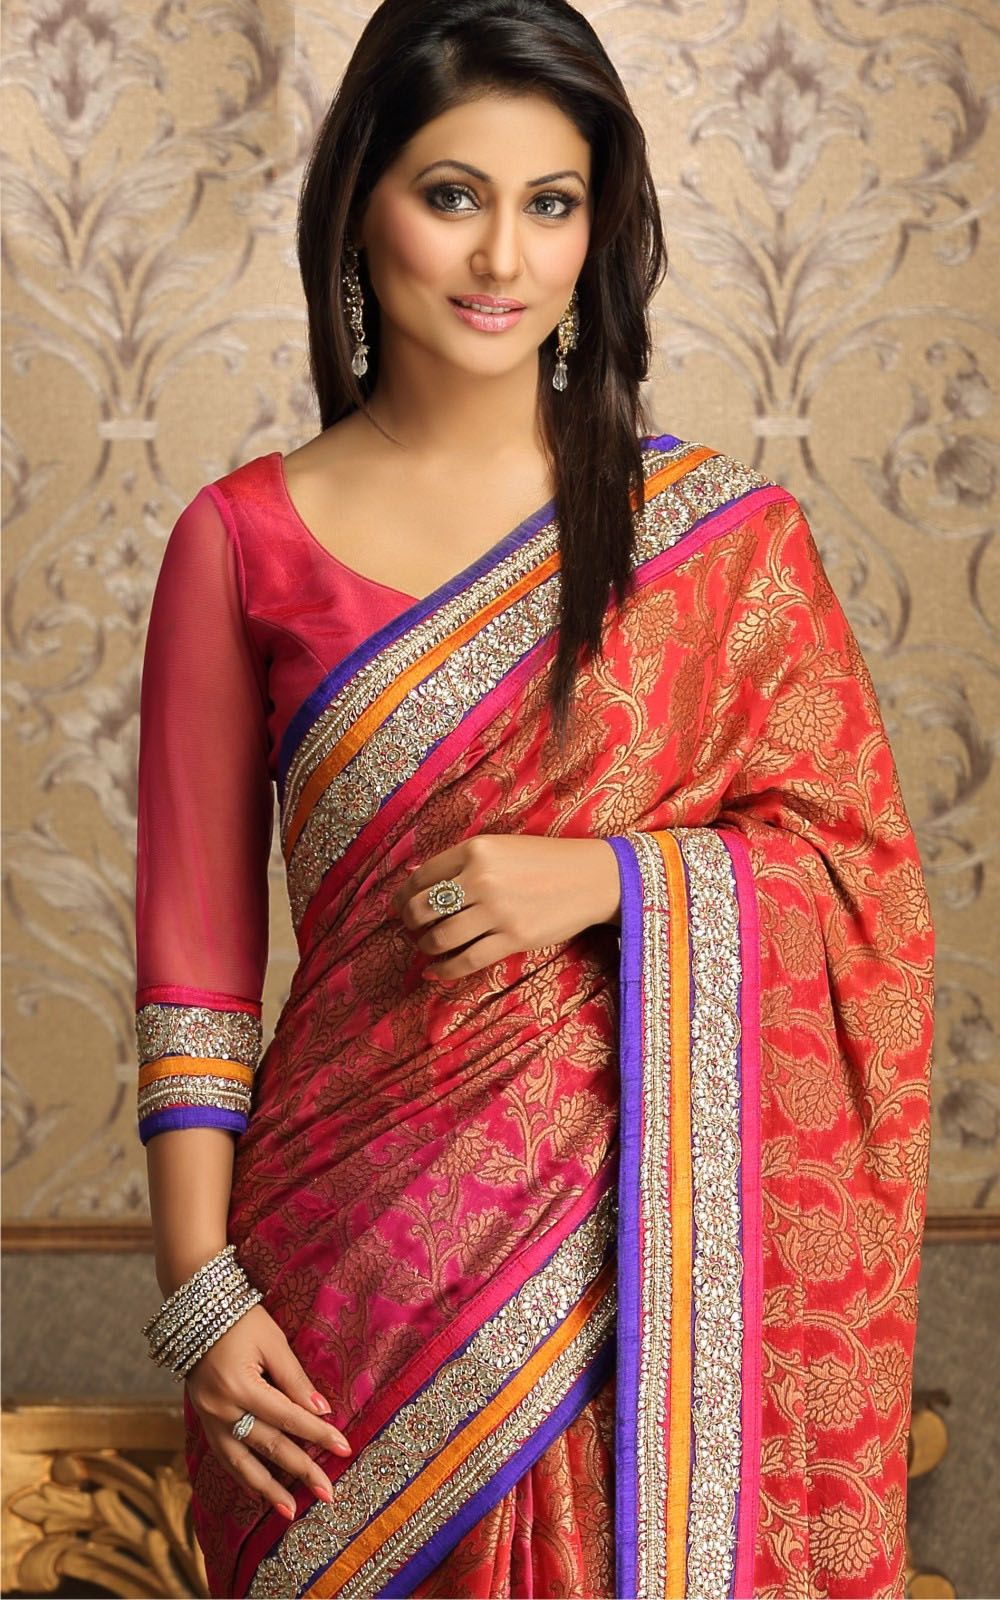 Beautiful Saree Collection And Style On Pinterest